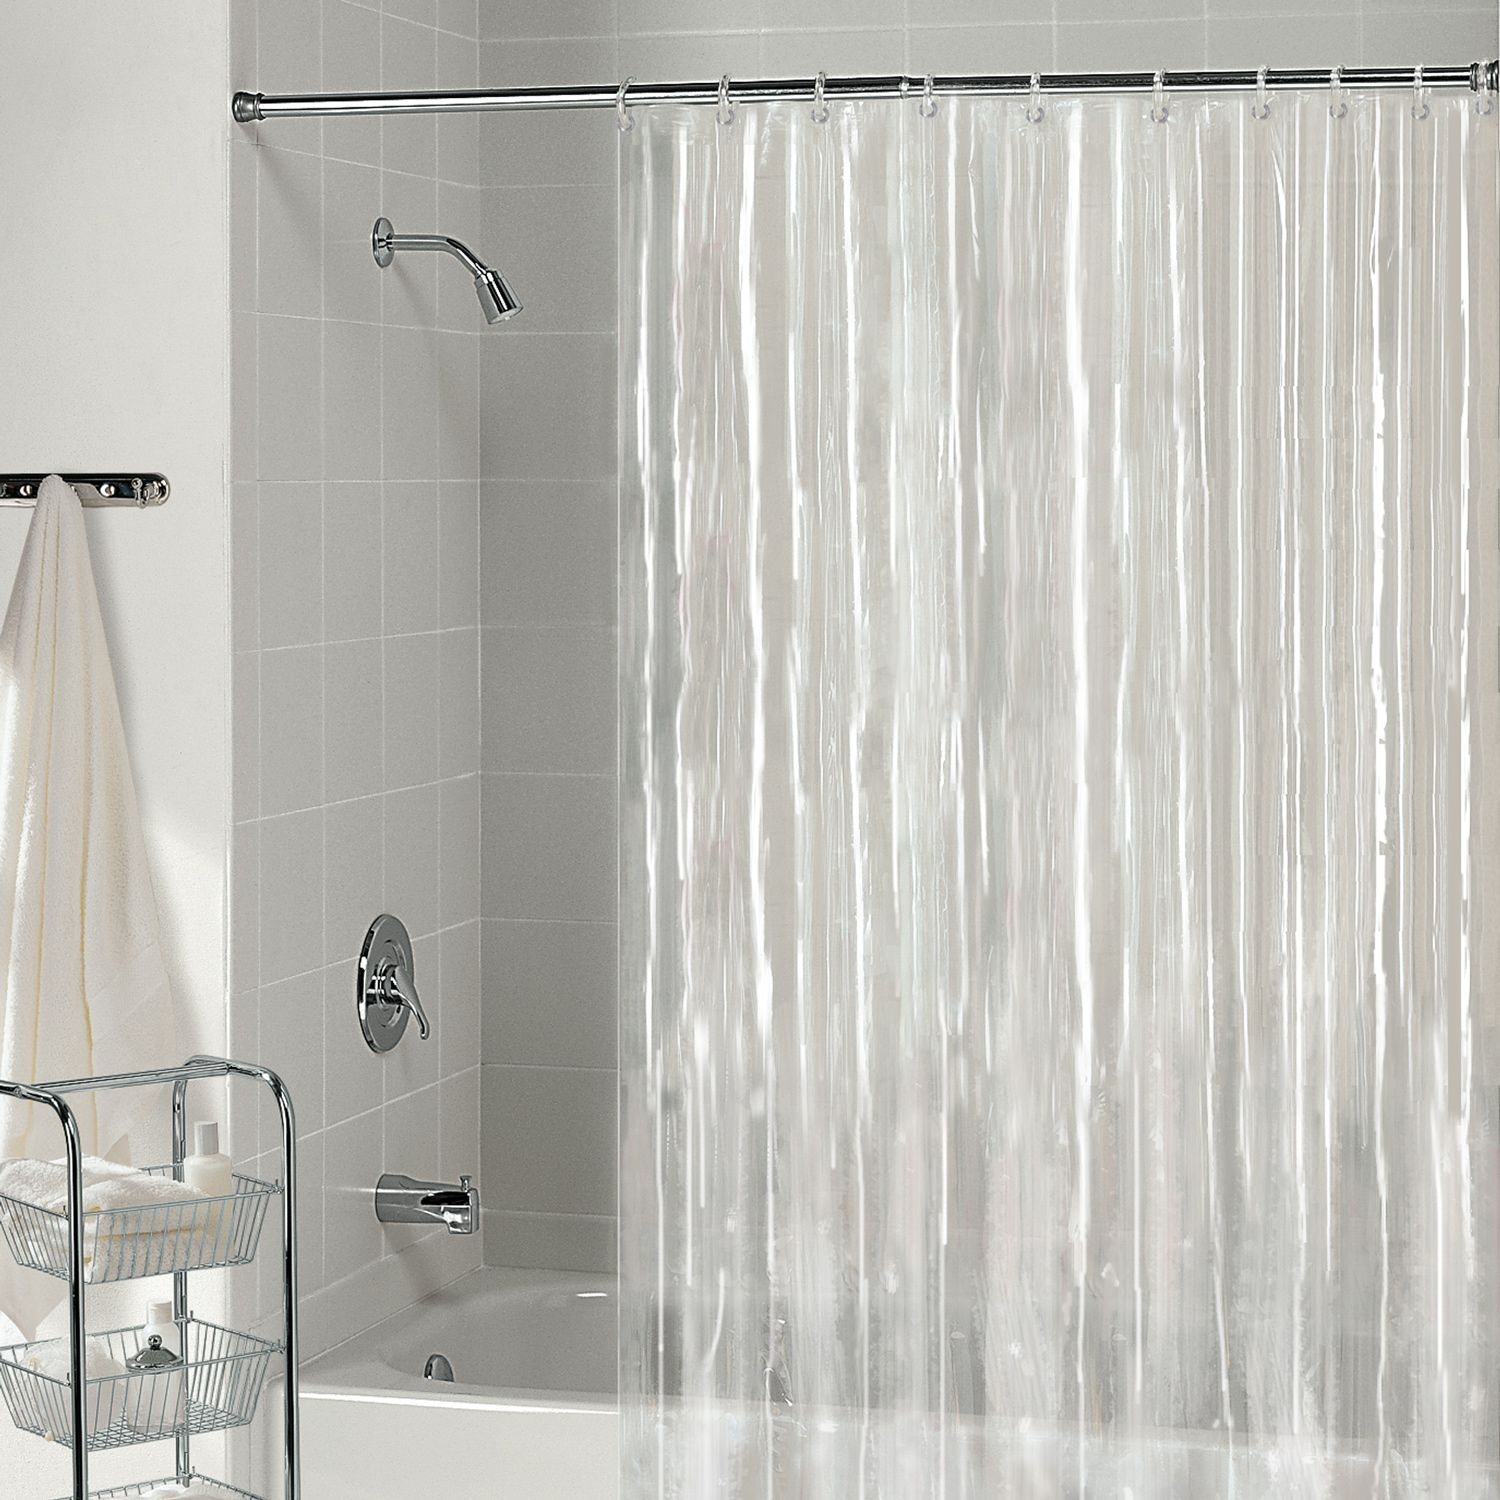 Retro And Fun Shower Curtains